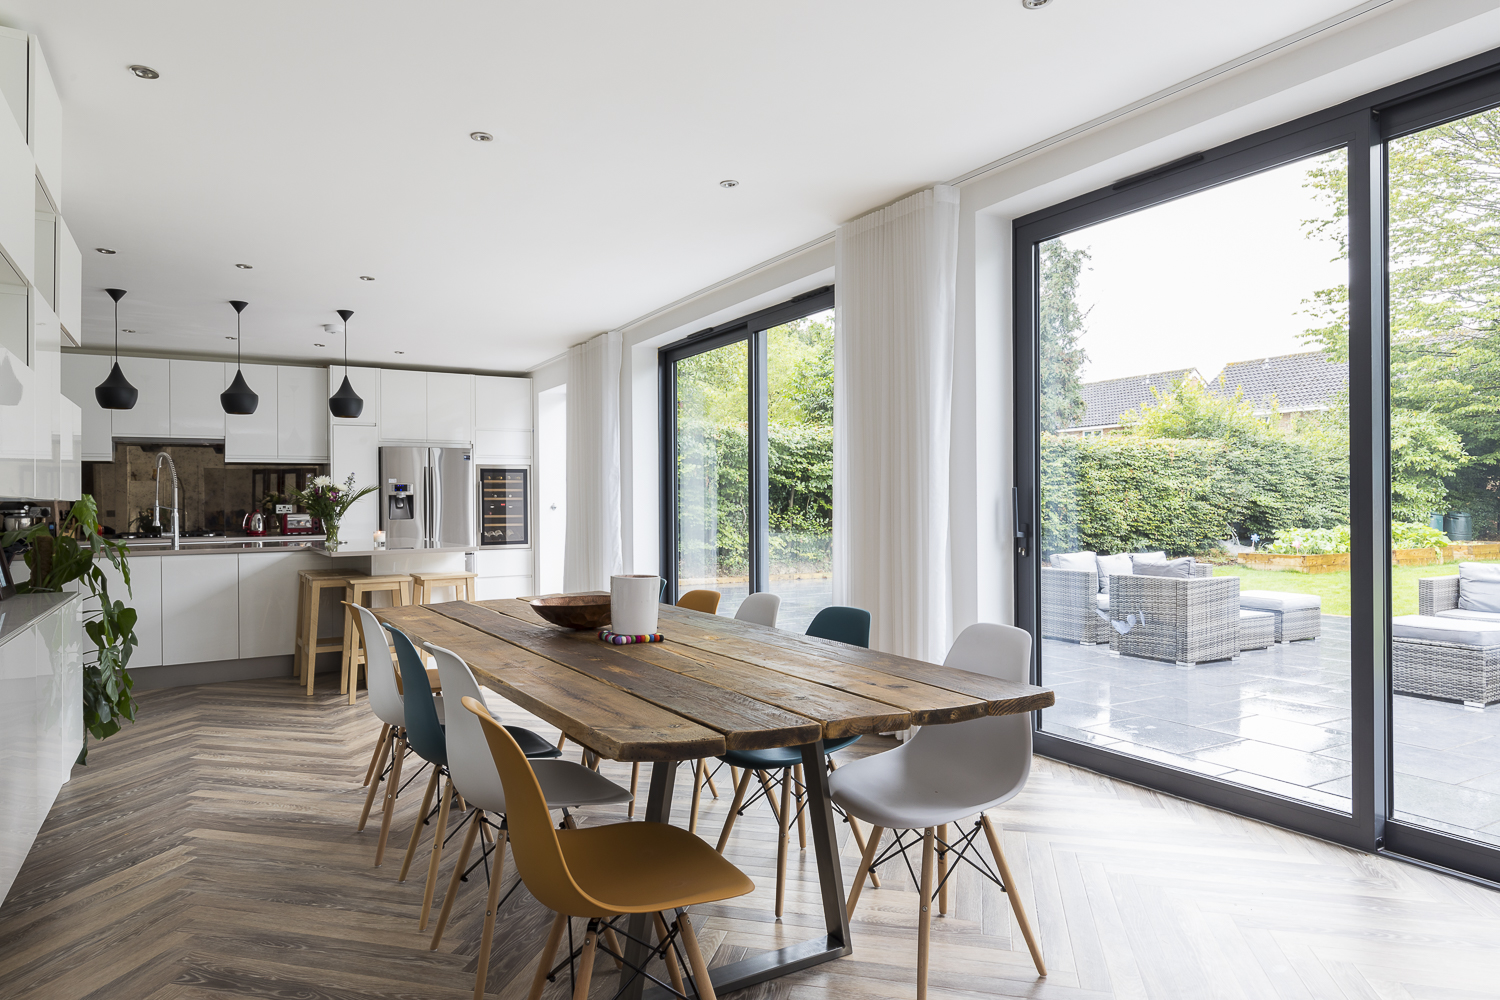 Whole House Renovation, Cheam - The aim of the design for the ground floor was to create a large open-plan kitchen, dining and family space that leads out onto the rear garden. We designed a single storey infill extension and reconfigured the internal walls in order to achieve the open plan space.